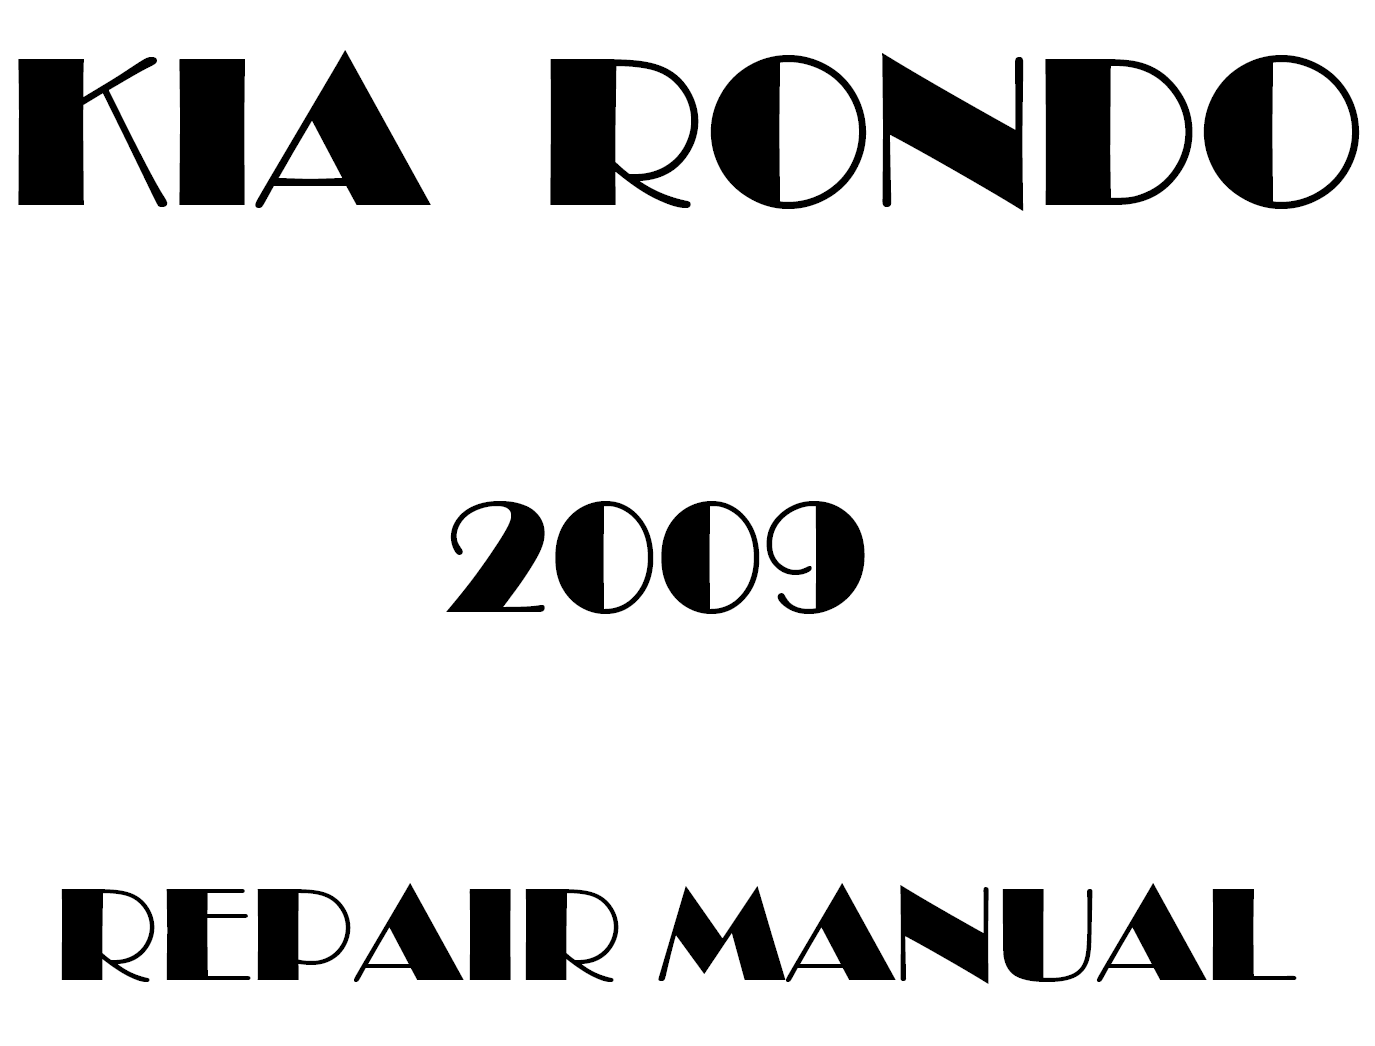 2009 Kia Rondo repair manual